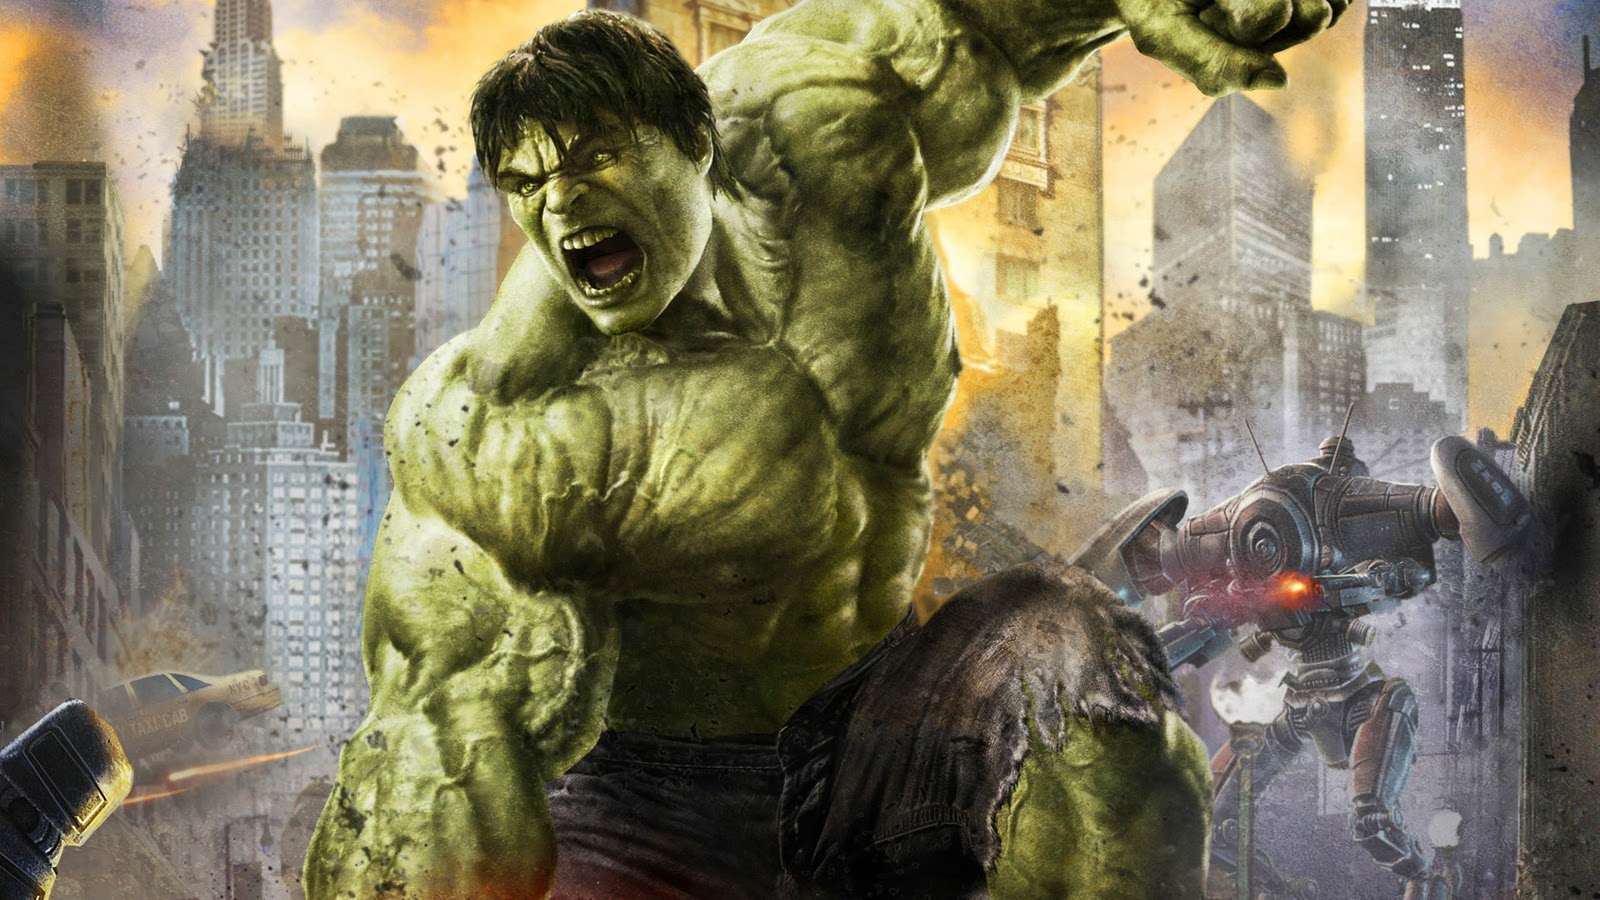 Hulk smash Wallpaper